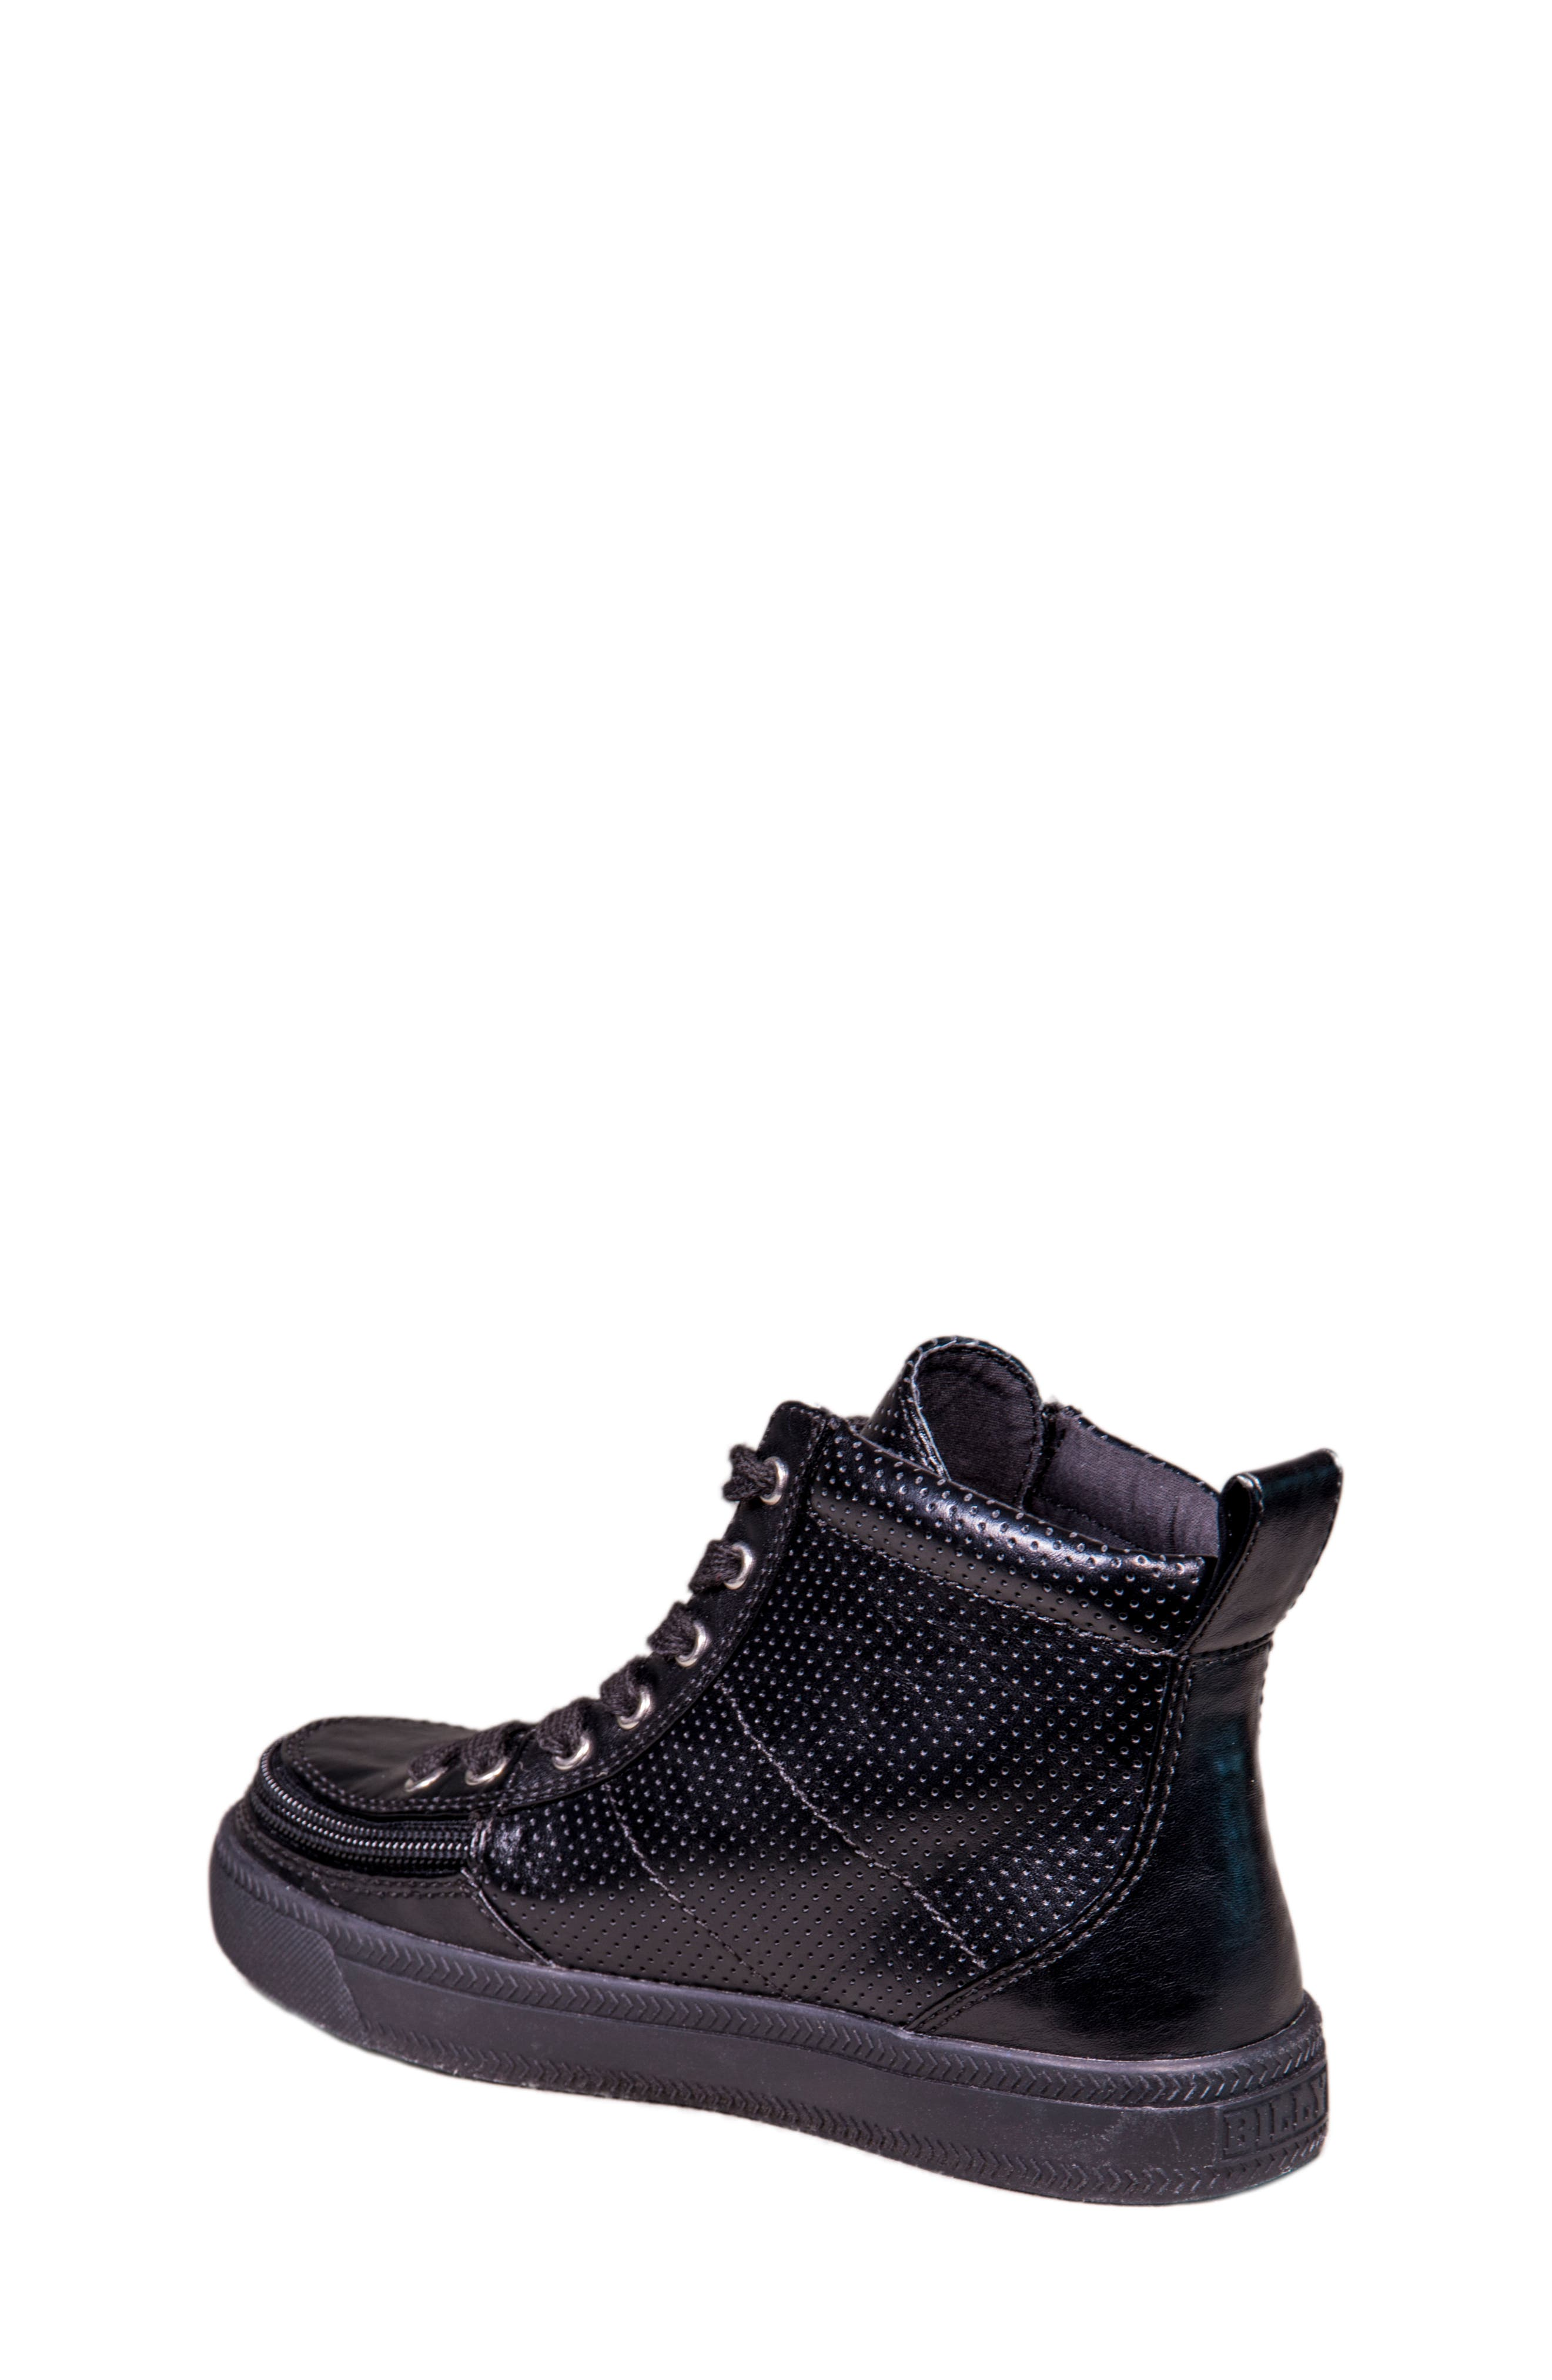 Zip Around Perforated High Top Sneaker,                             Alternate thumbnail 2, color,                             Black Perforated